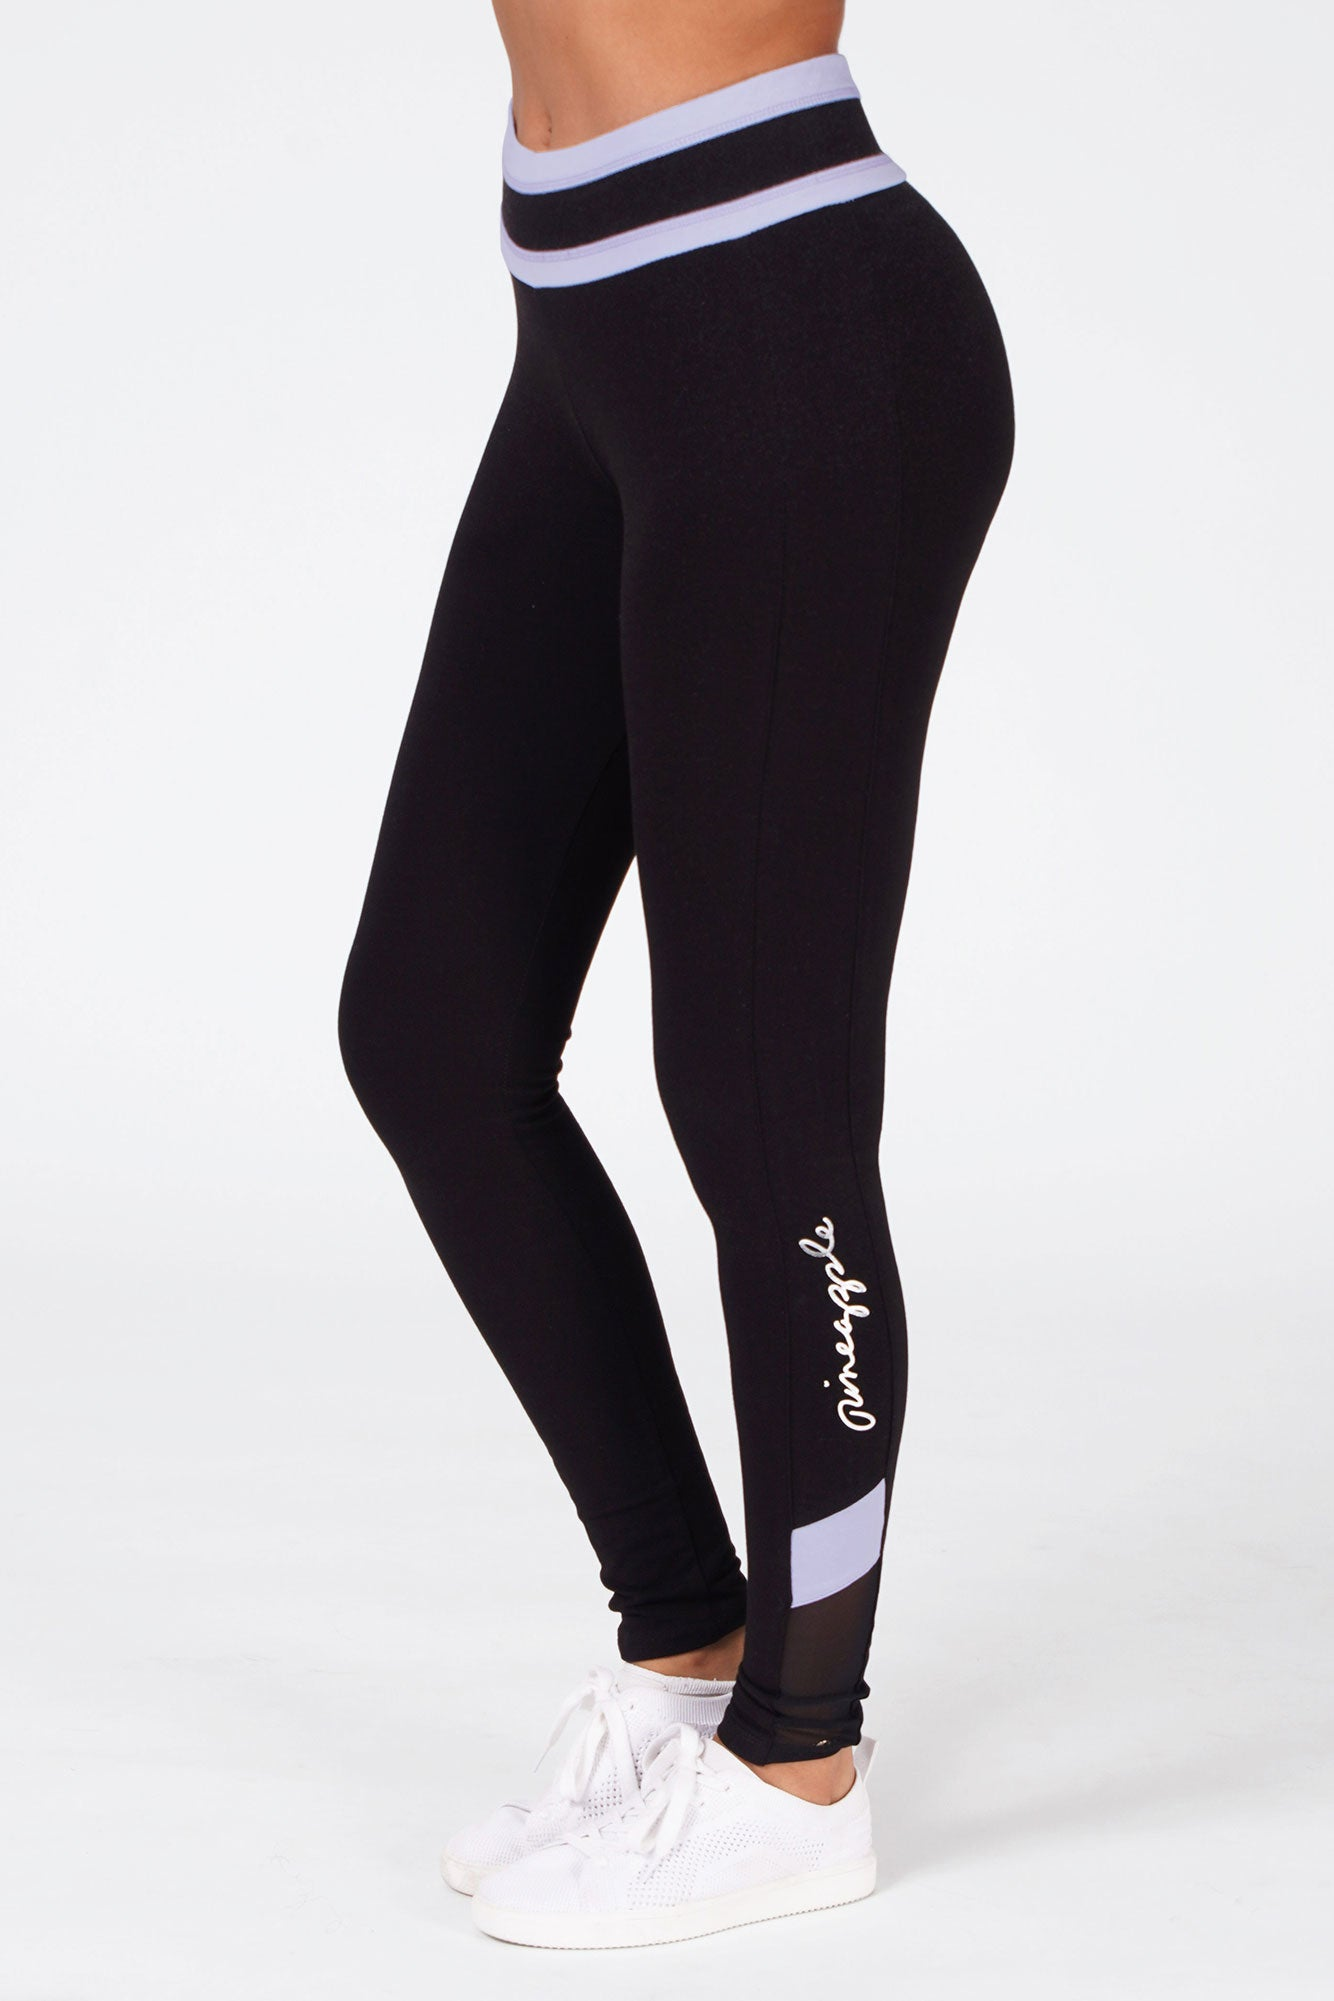 Woman wearing Pineapple Contrast Band Panel Black Leggings